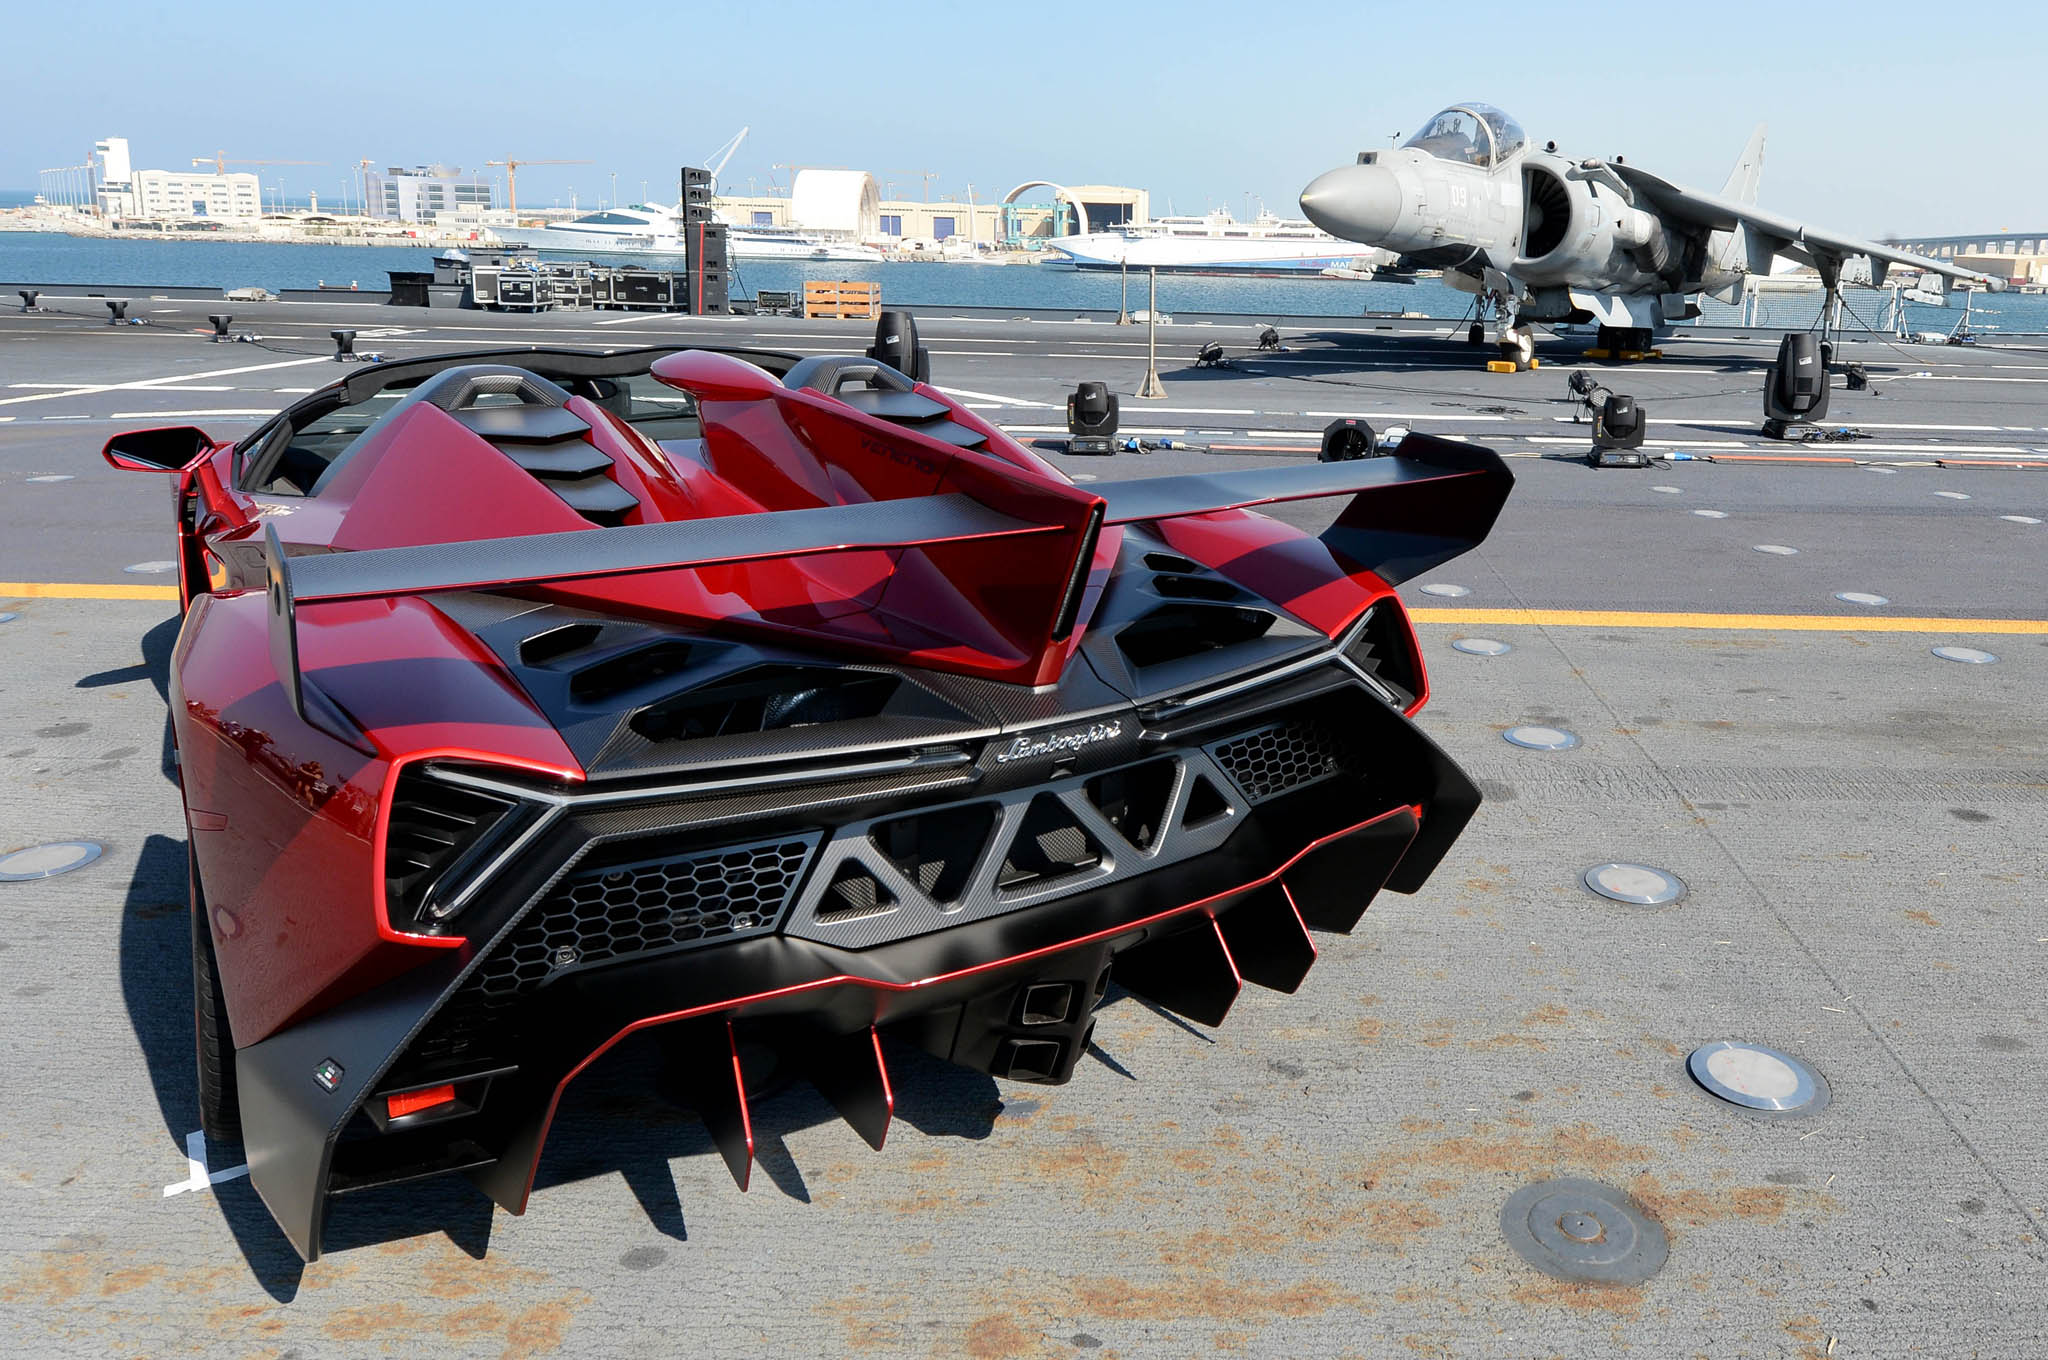 Lamborghini Veneno For Sale >> Hyper-Rare Lamborghini Veneno Up for Sale for $11.1 Million | Automobile Magazine